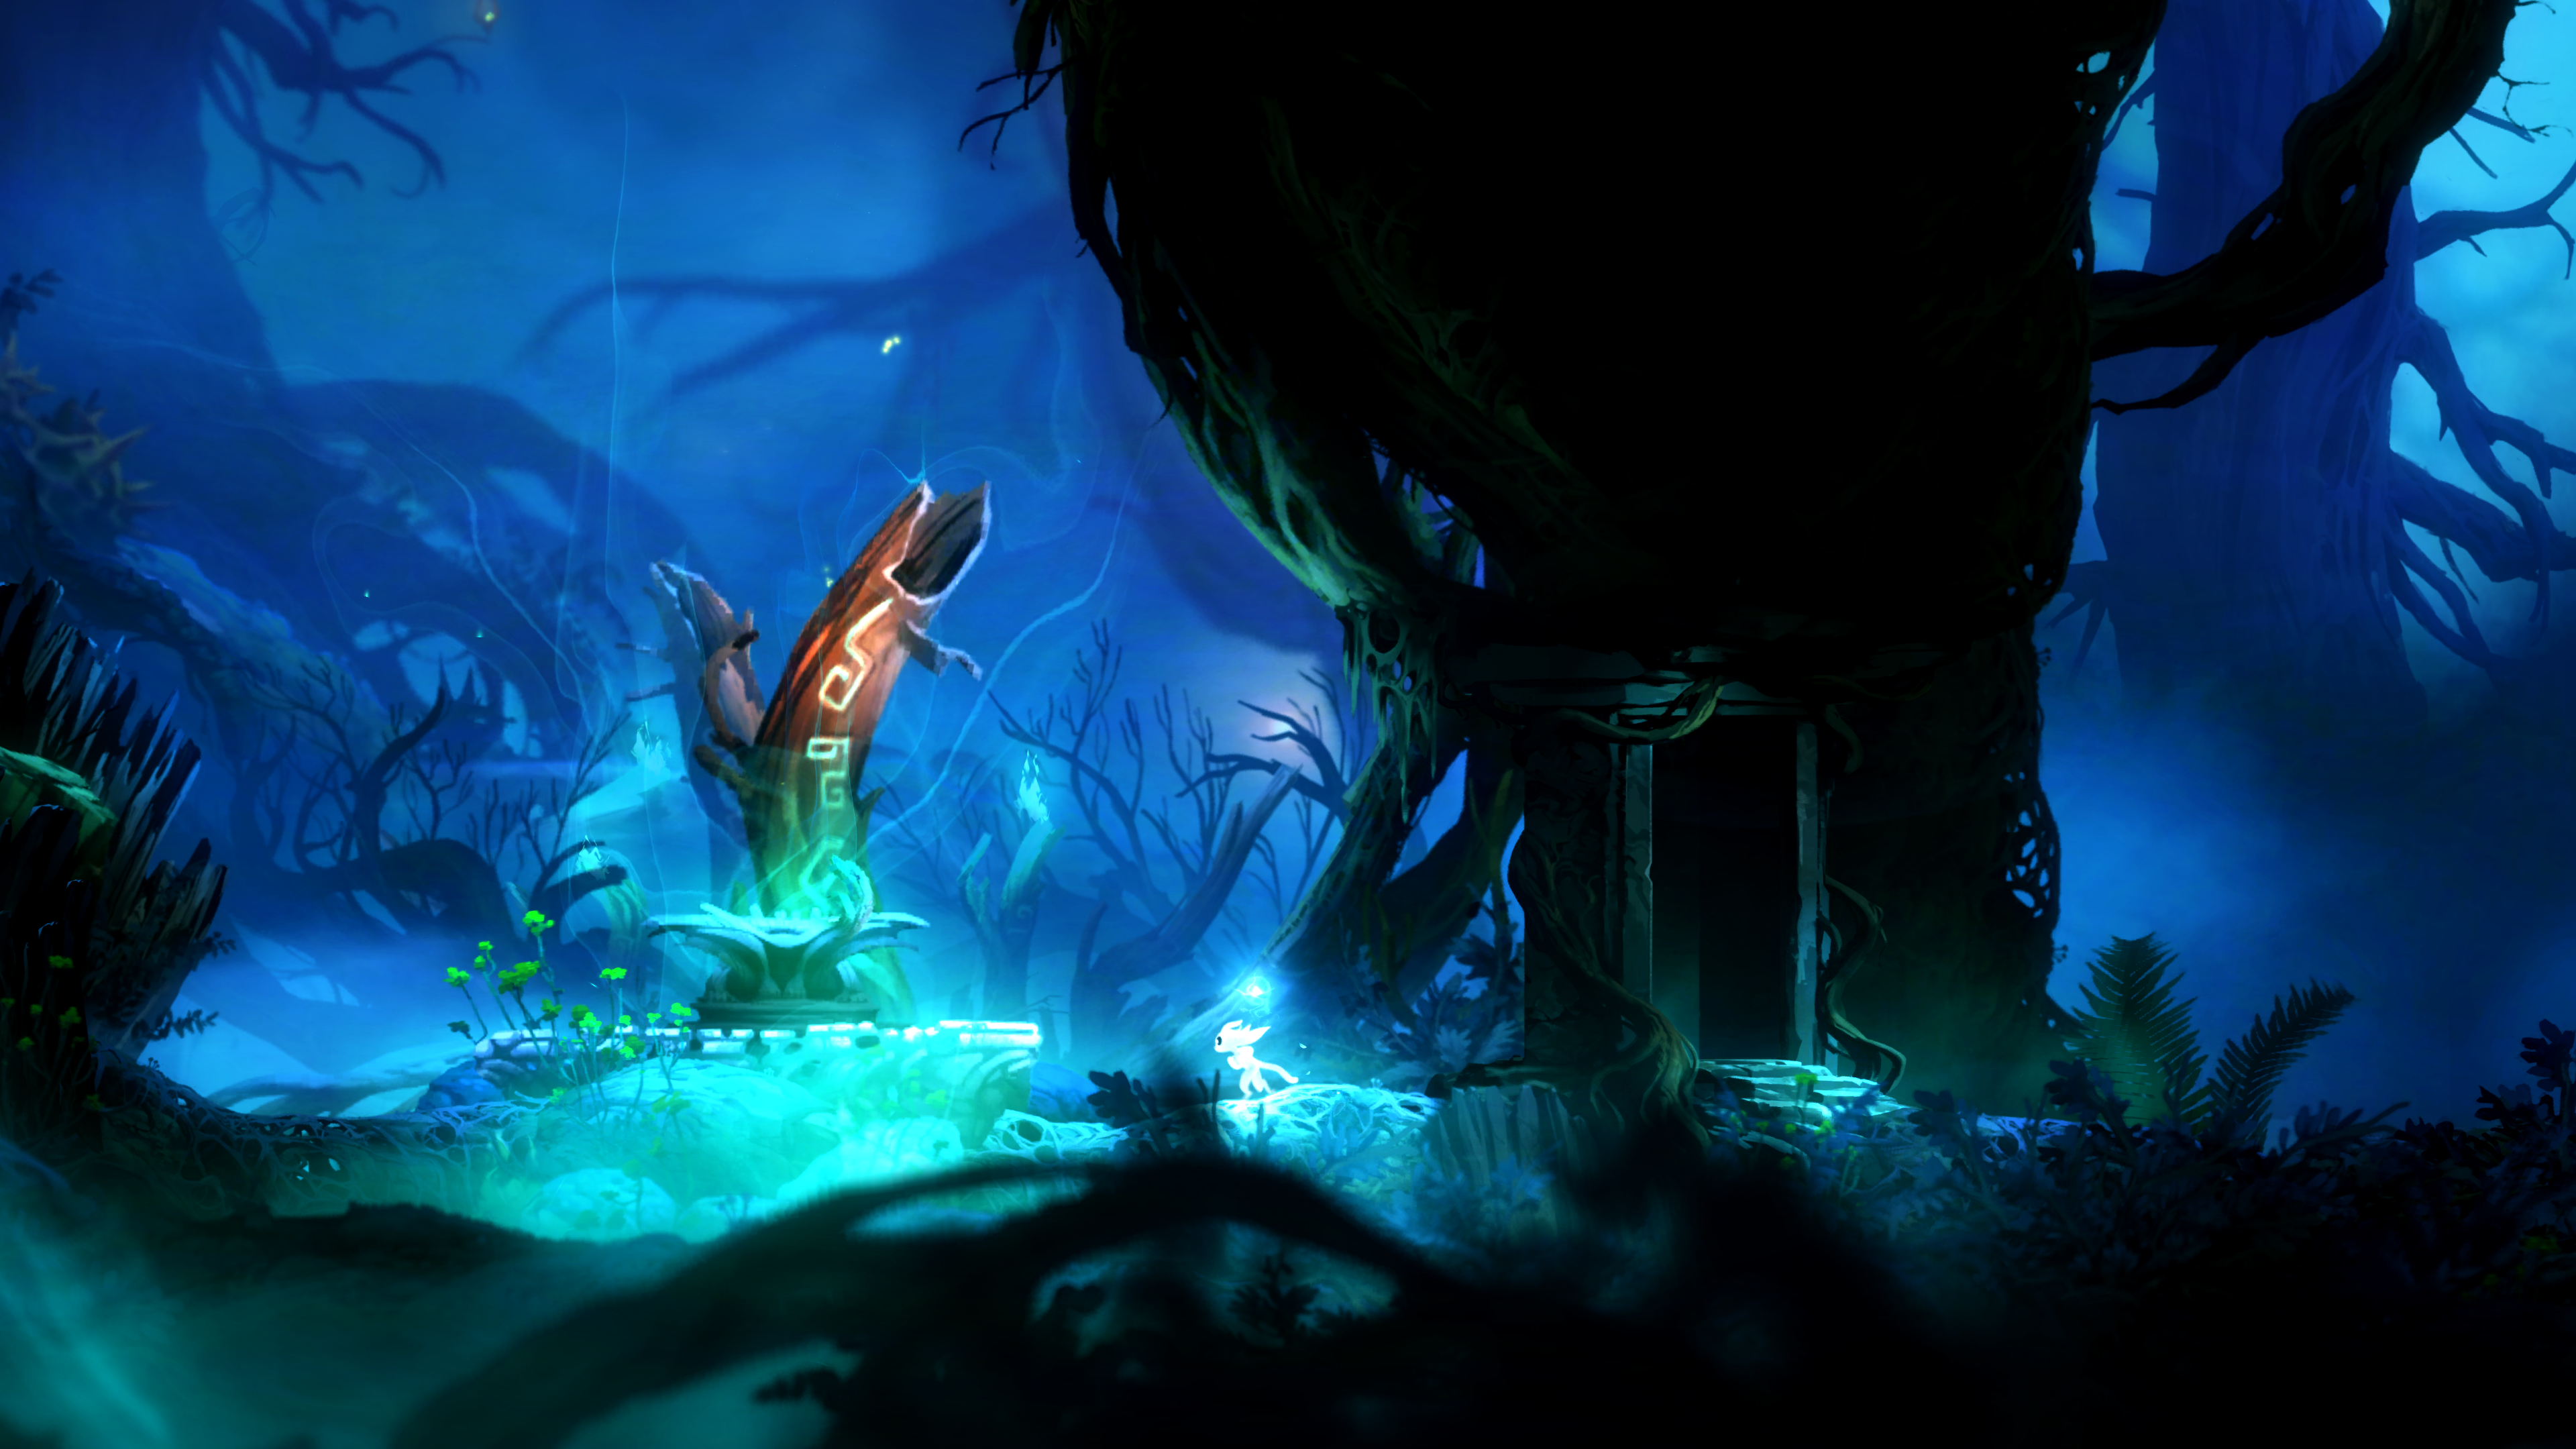 ori and the blind forest 4k screenshot gallery | pc gamer